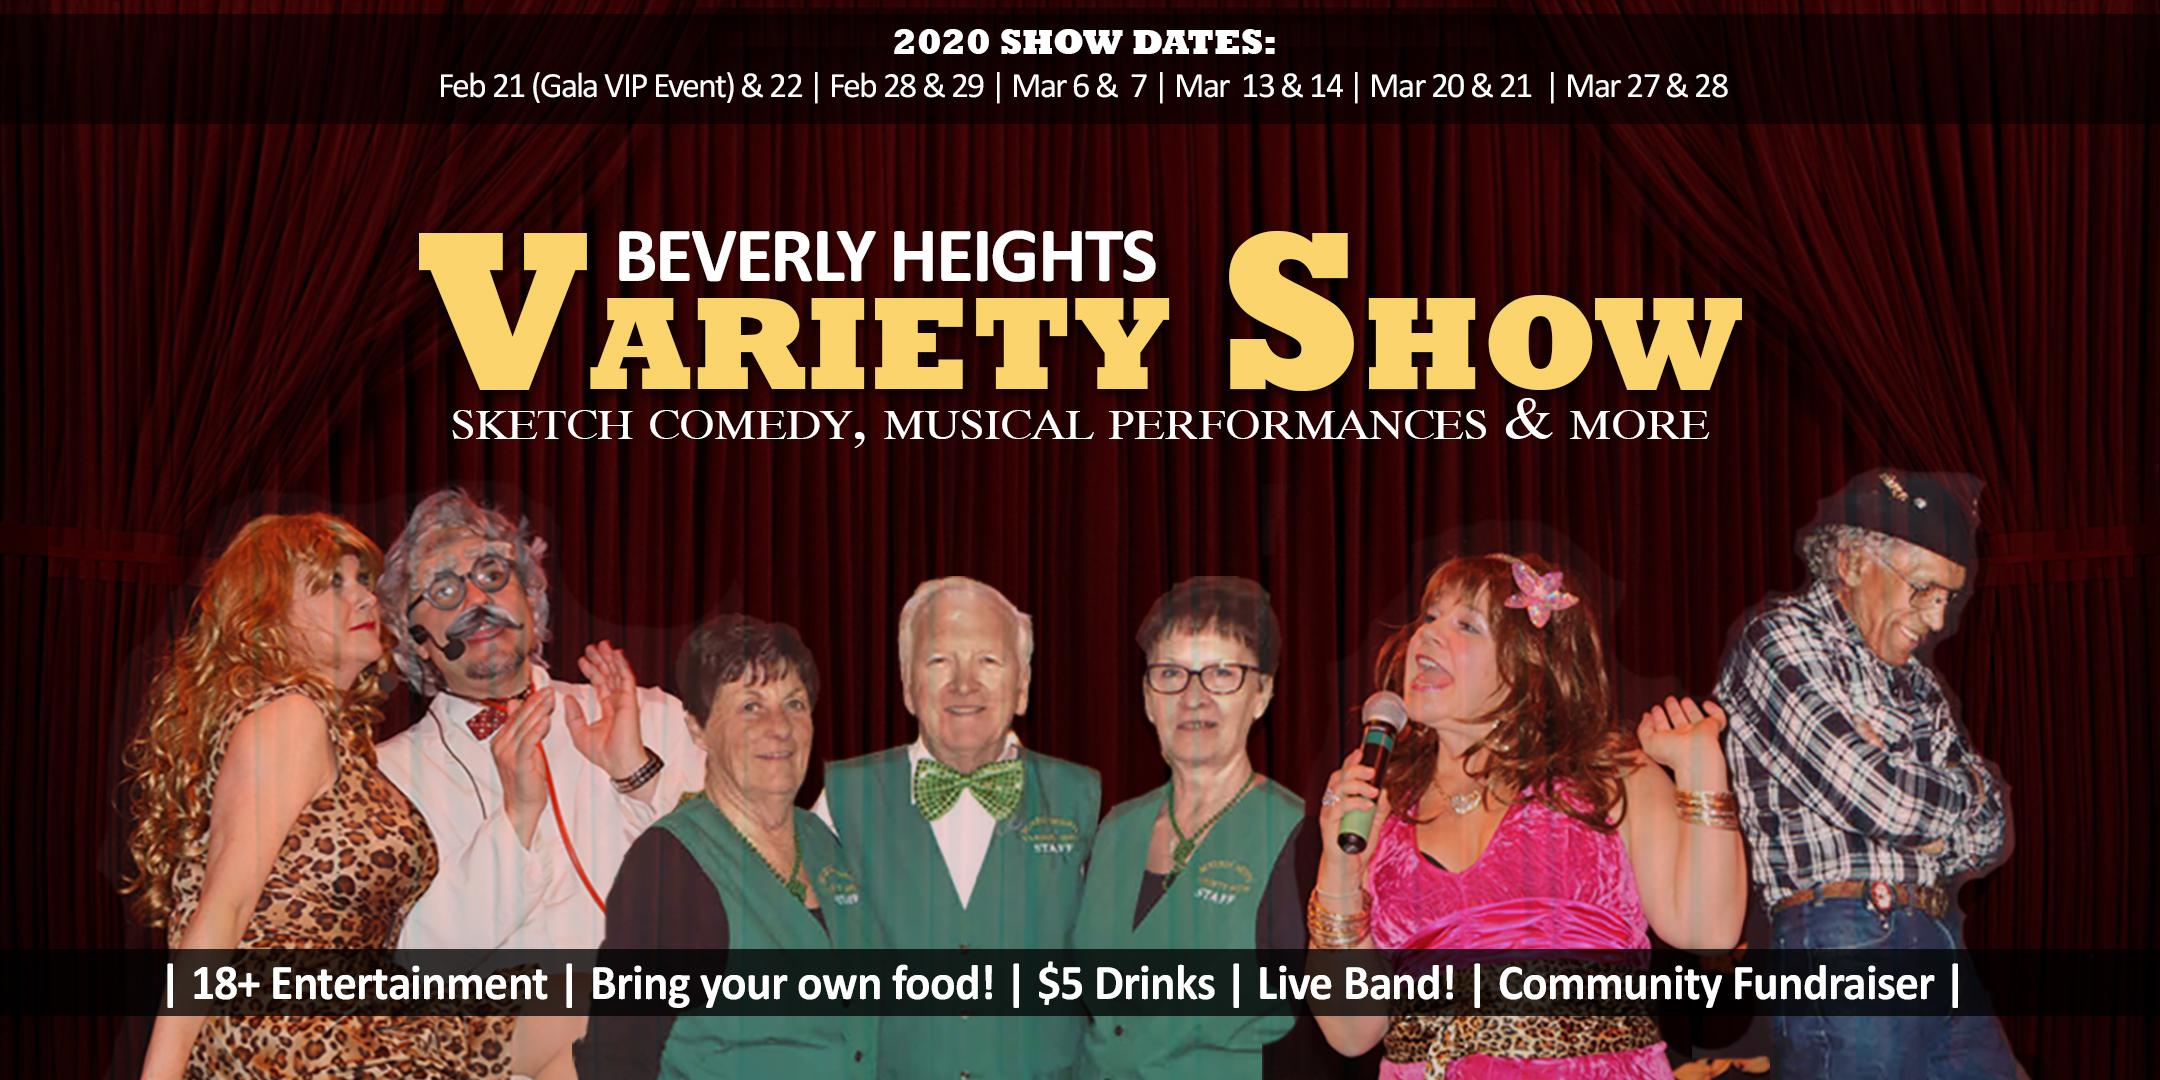 2020 Beverly Heights Variety Show February 28